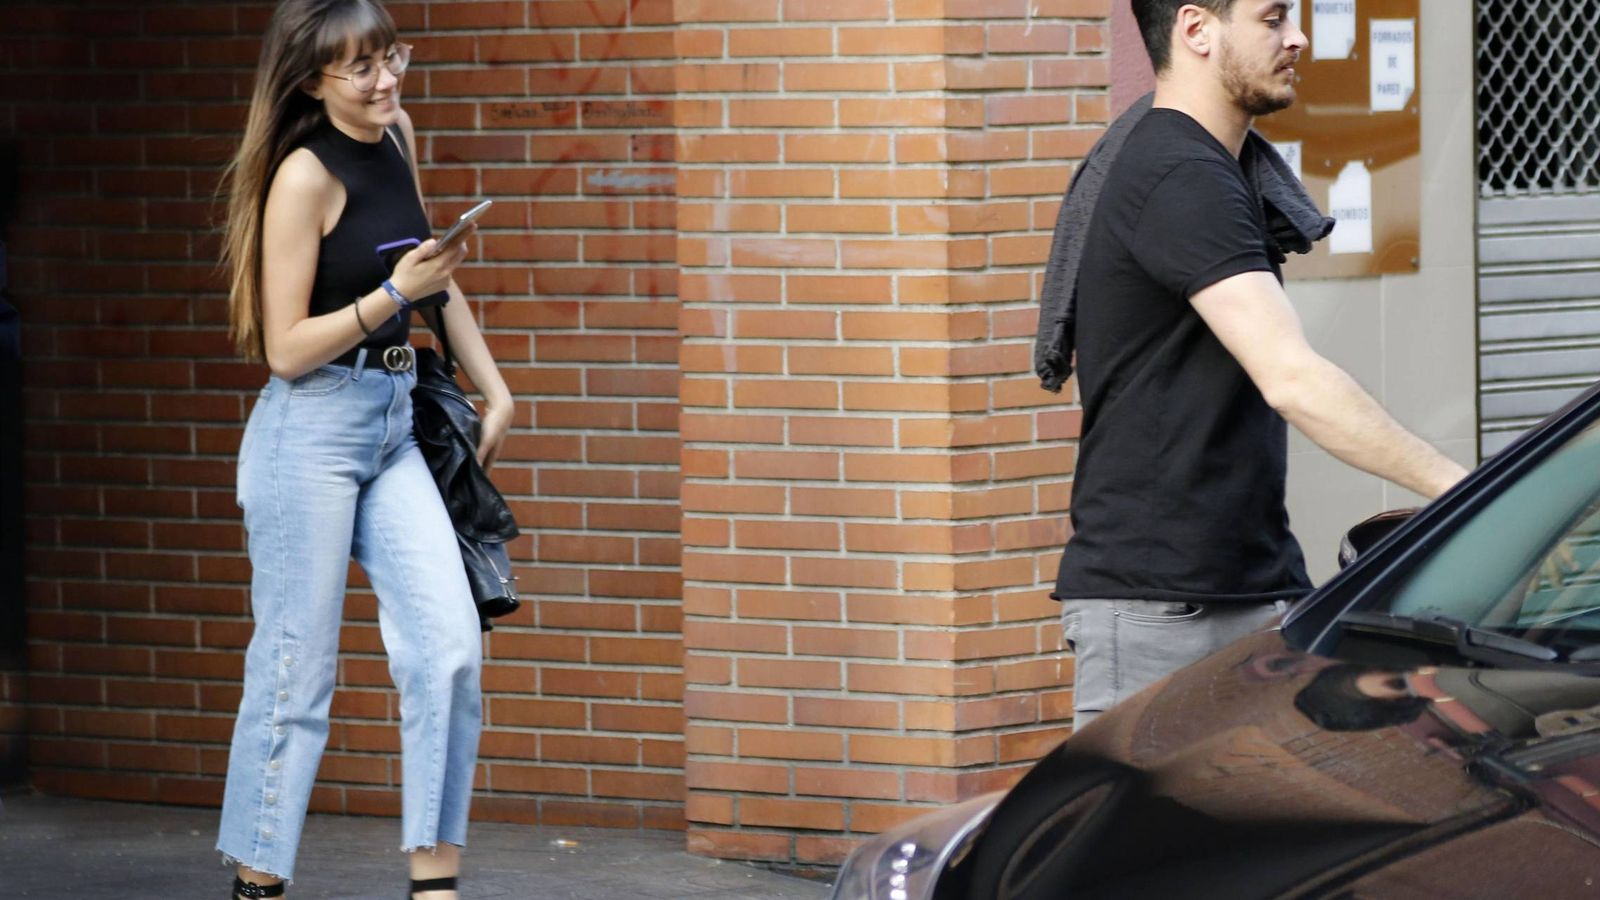 Foto: Aitana y Cepeda en Madrid. (Cordon Press)